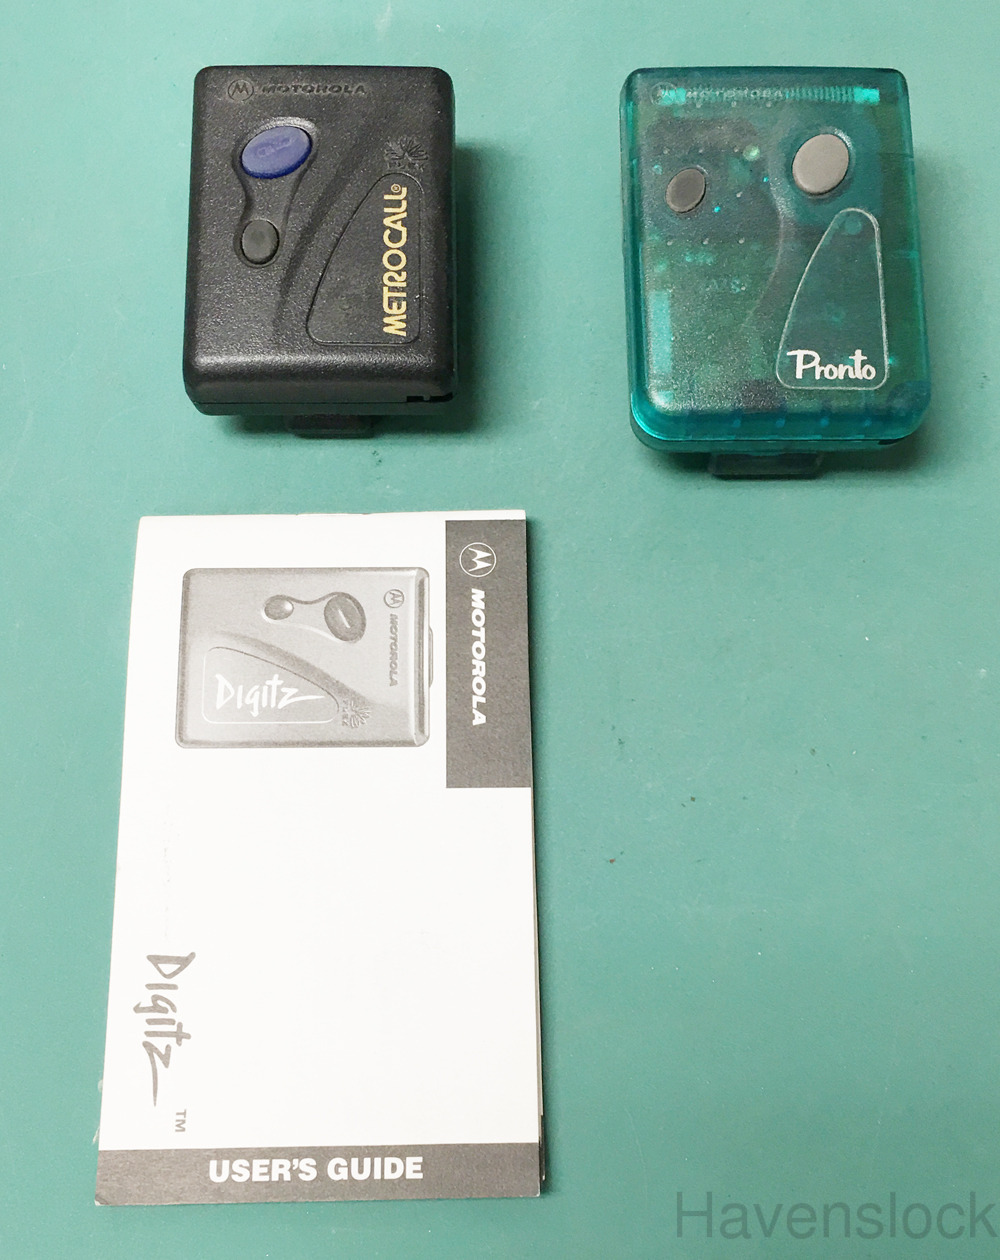 (2) Motorola Pagers, Comes with 1 manual each, Pag